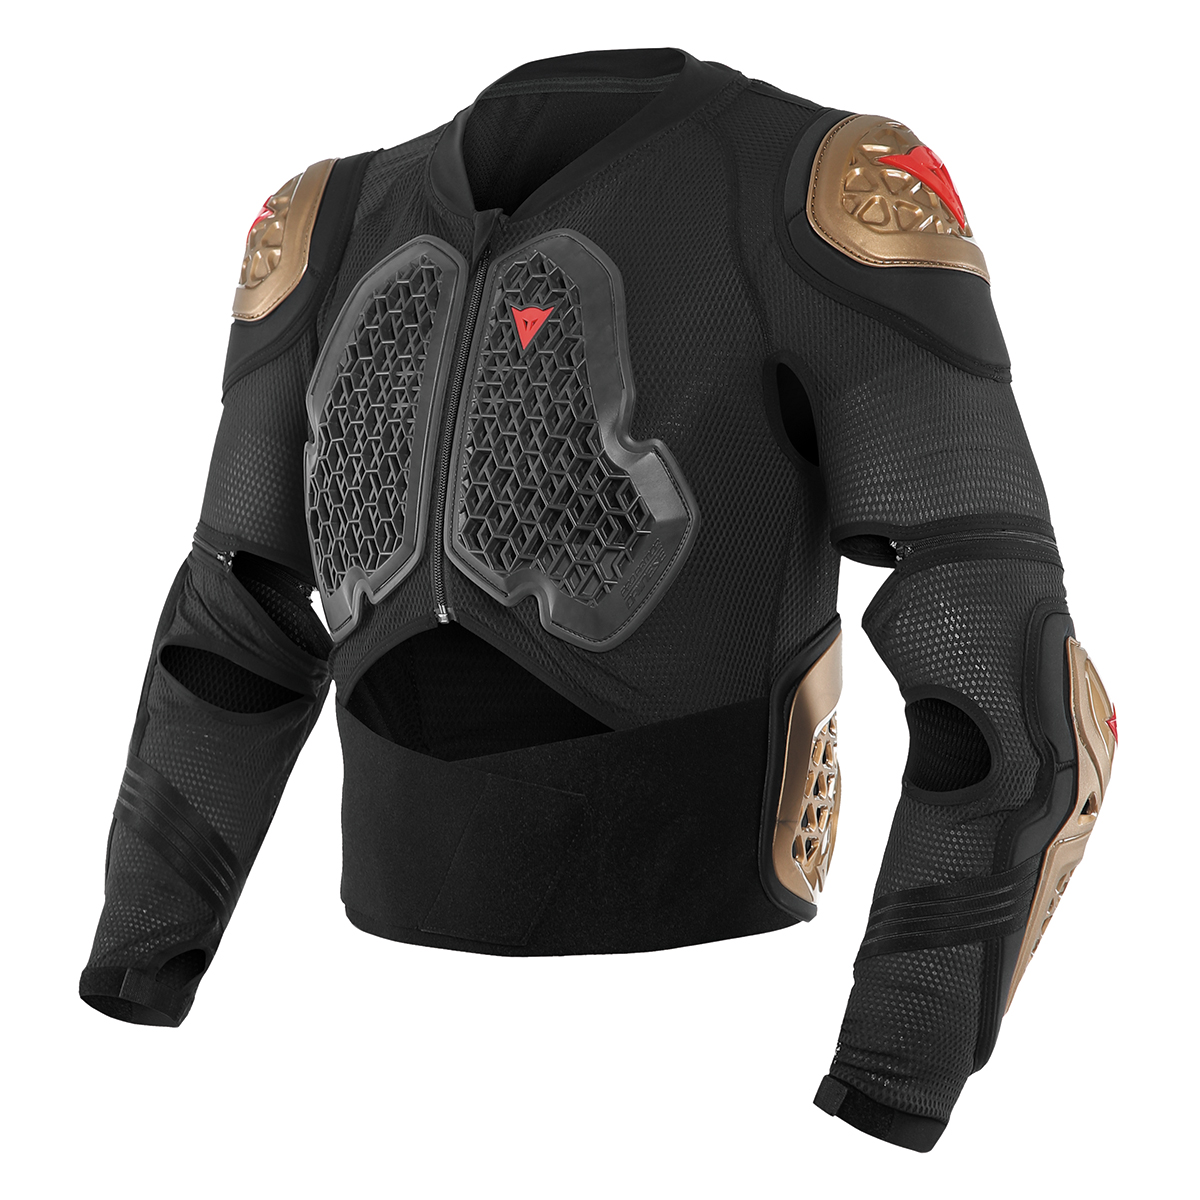 Dainese MX 1 Bodyprotector Copper